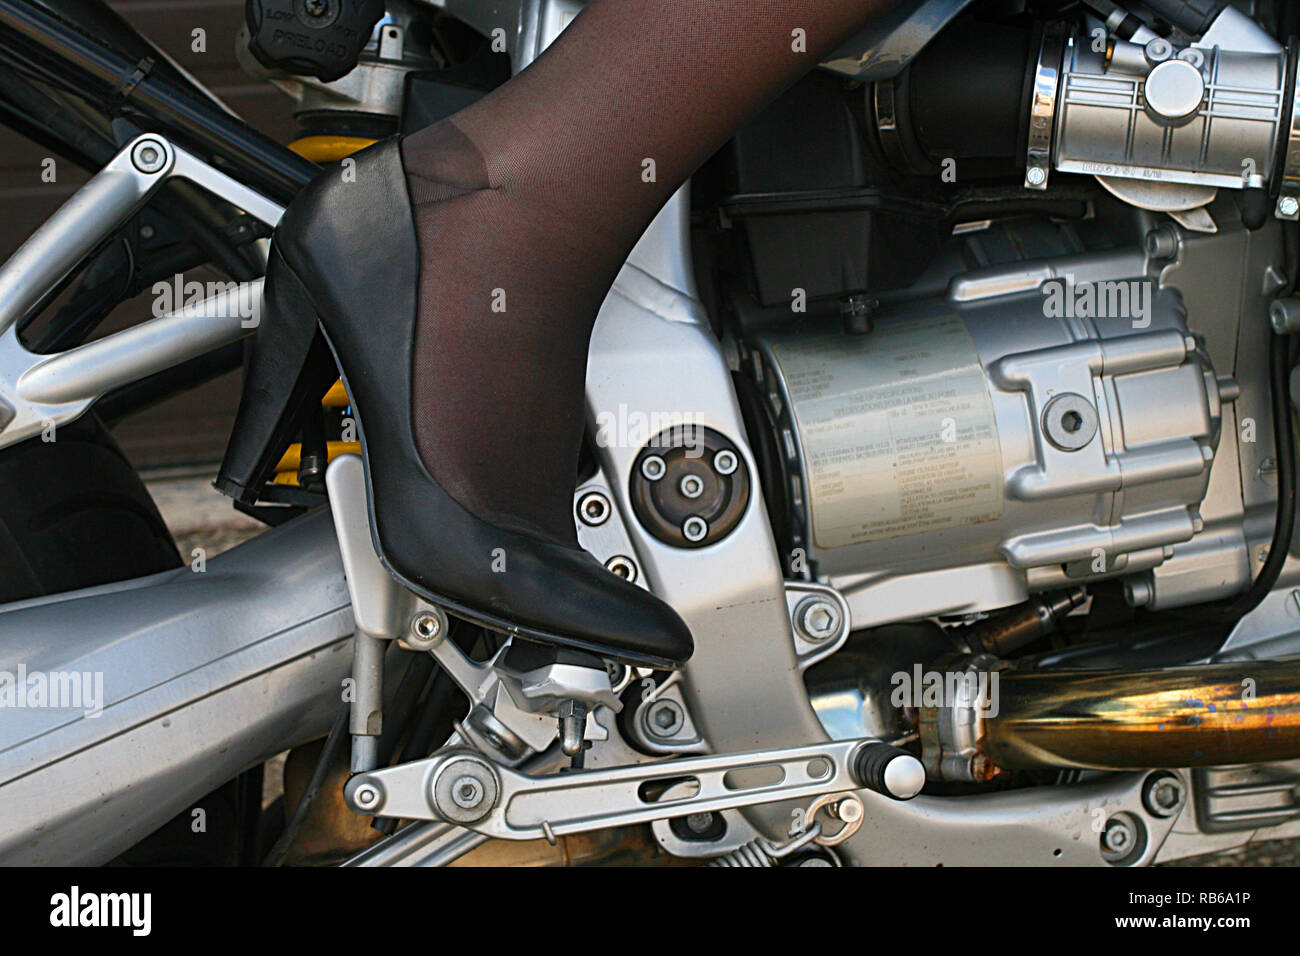 Blonde  Woman  wearing nylon stocking, high heels and short shorts riding a motorcycle - Stock Image